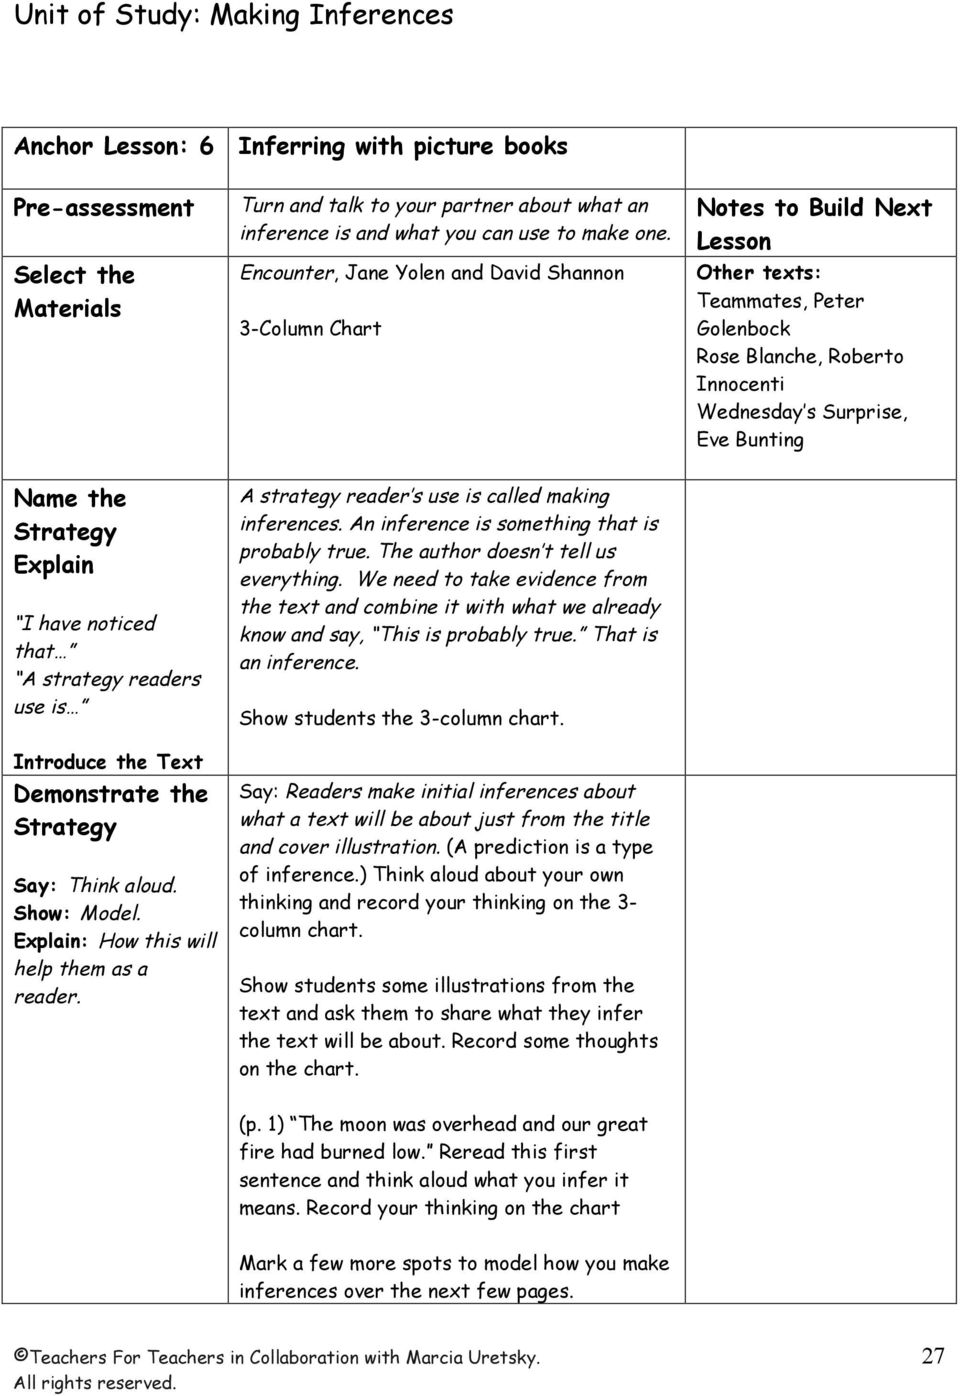 Strategy Explain I have noticed that A strategy readers use is Introduce the Text Demonstrate the Strategy Say: Think aloud. Show: Model. Explain: How this will help them as a reader.